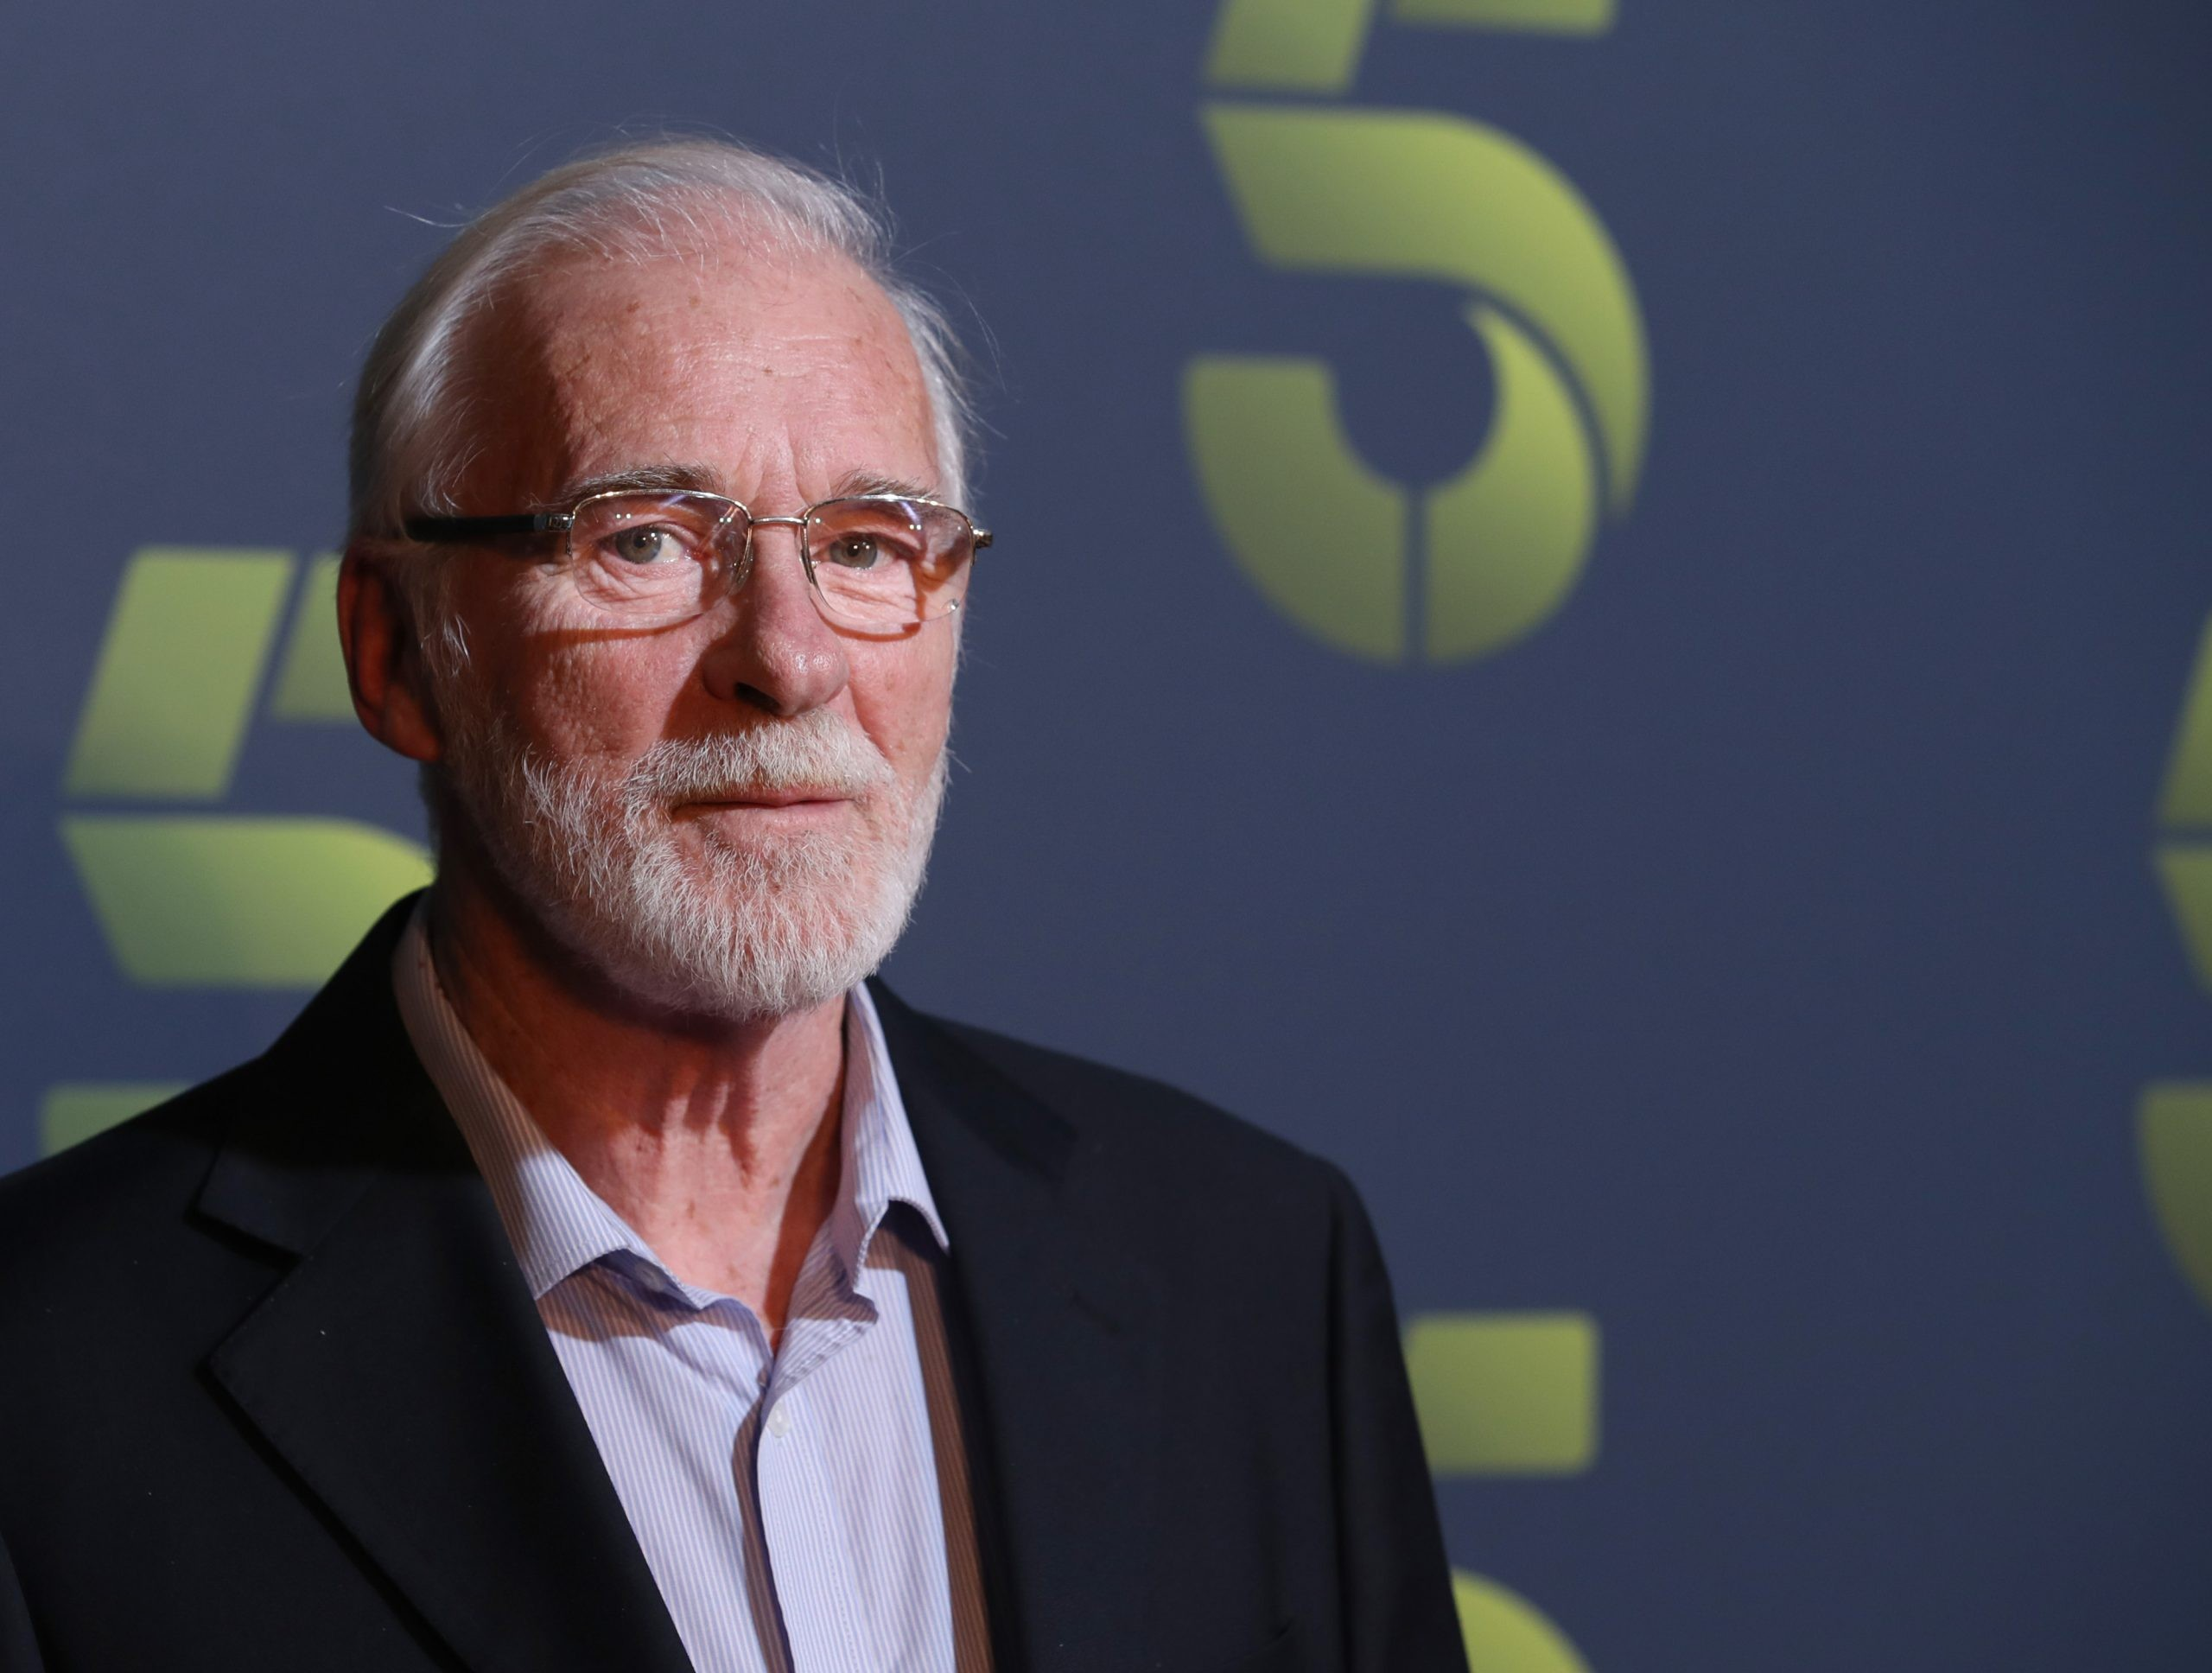 LONDON, ENGLAND - NOVEMBER 19:  Ian McElhinney attends the Channel 5 2020 Upfront photocall at St. Pancras Renaissance London Hotel on November 19, 2019 in London, England. (Photo by Mike Marsland/WireImage)